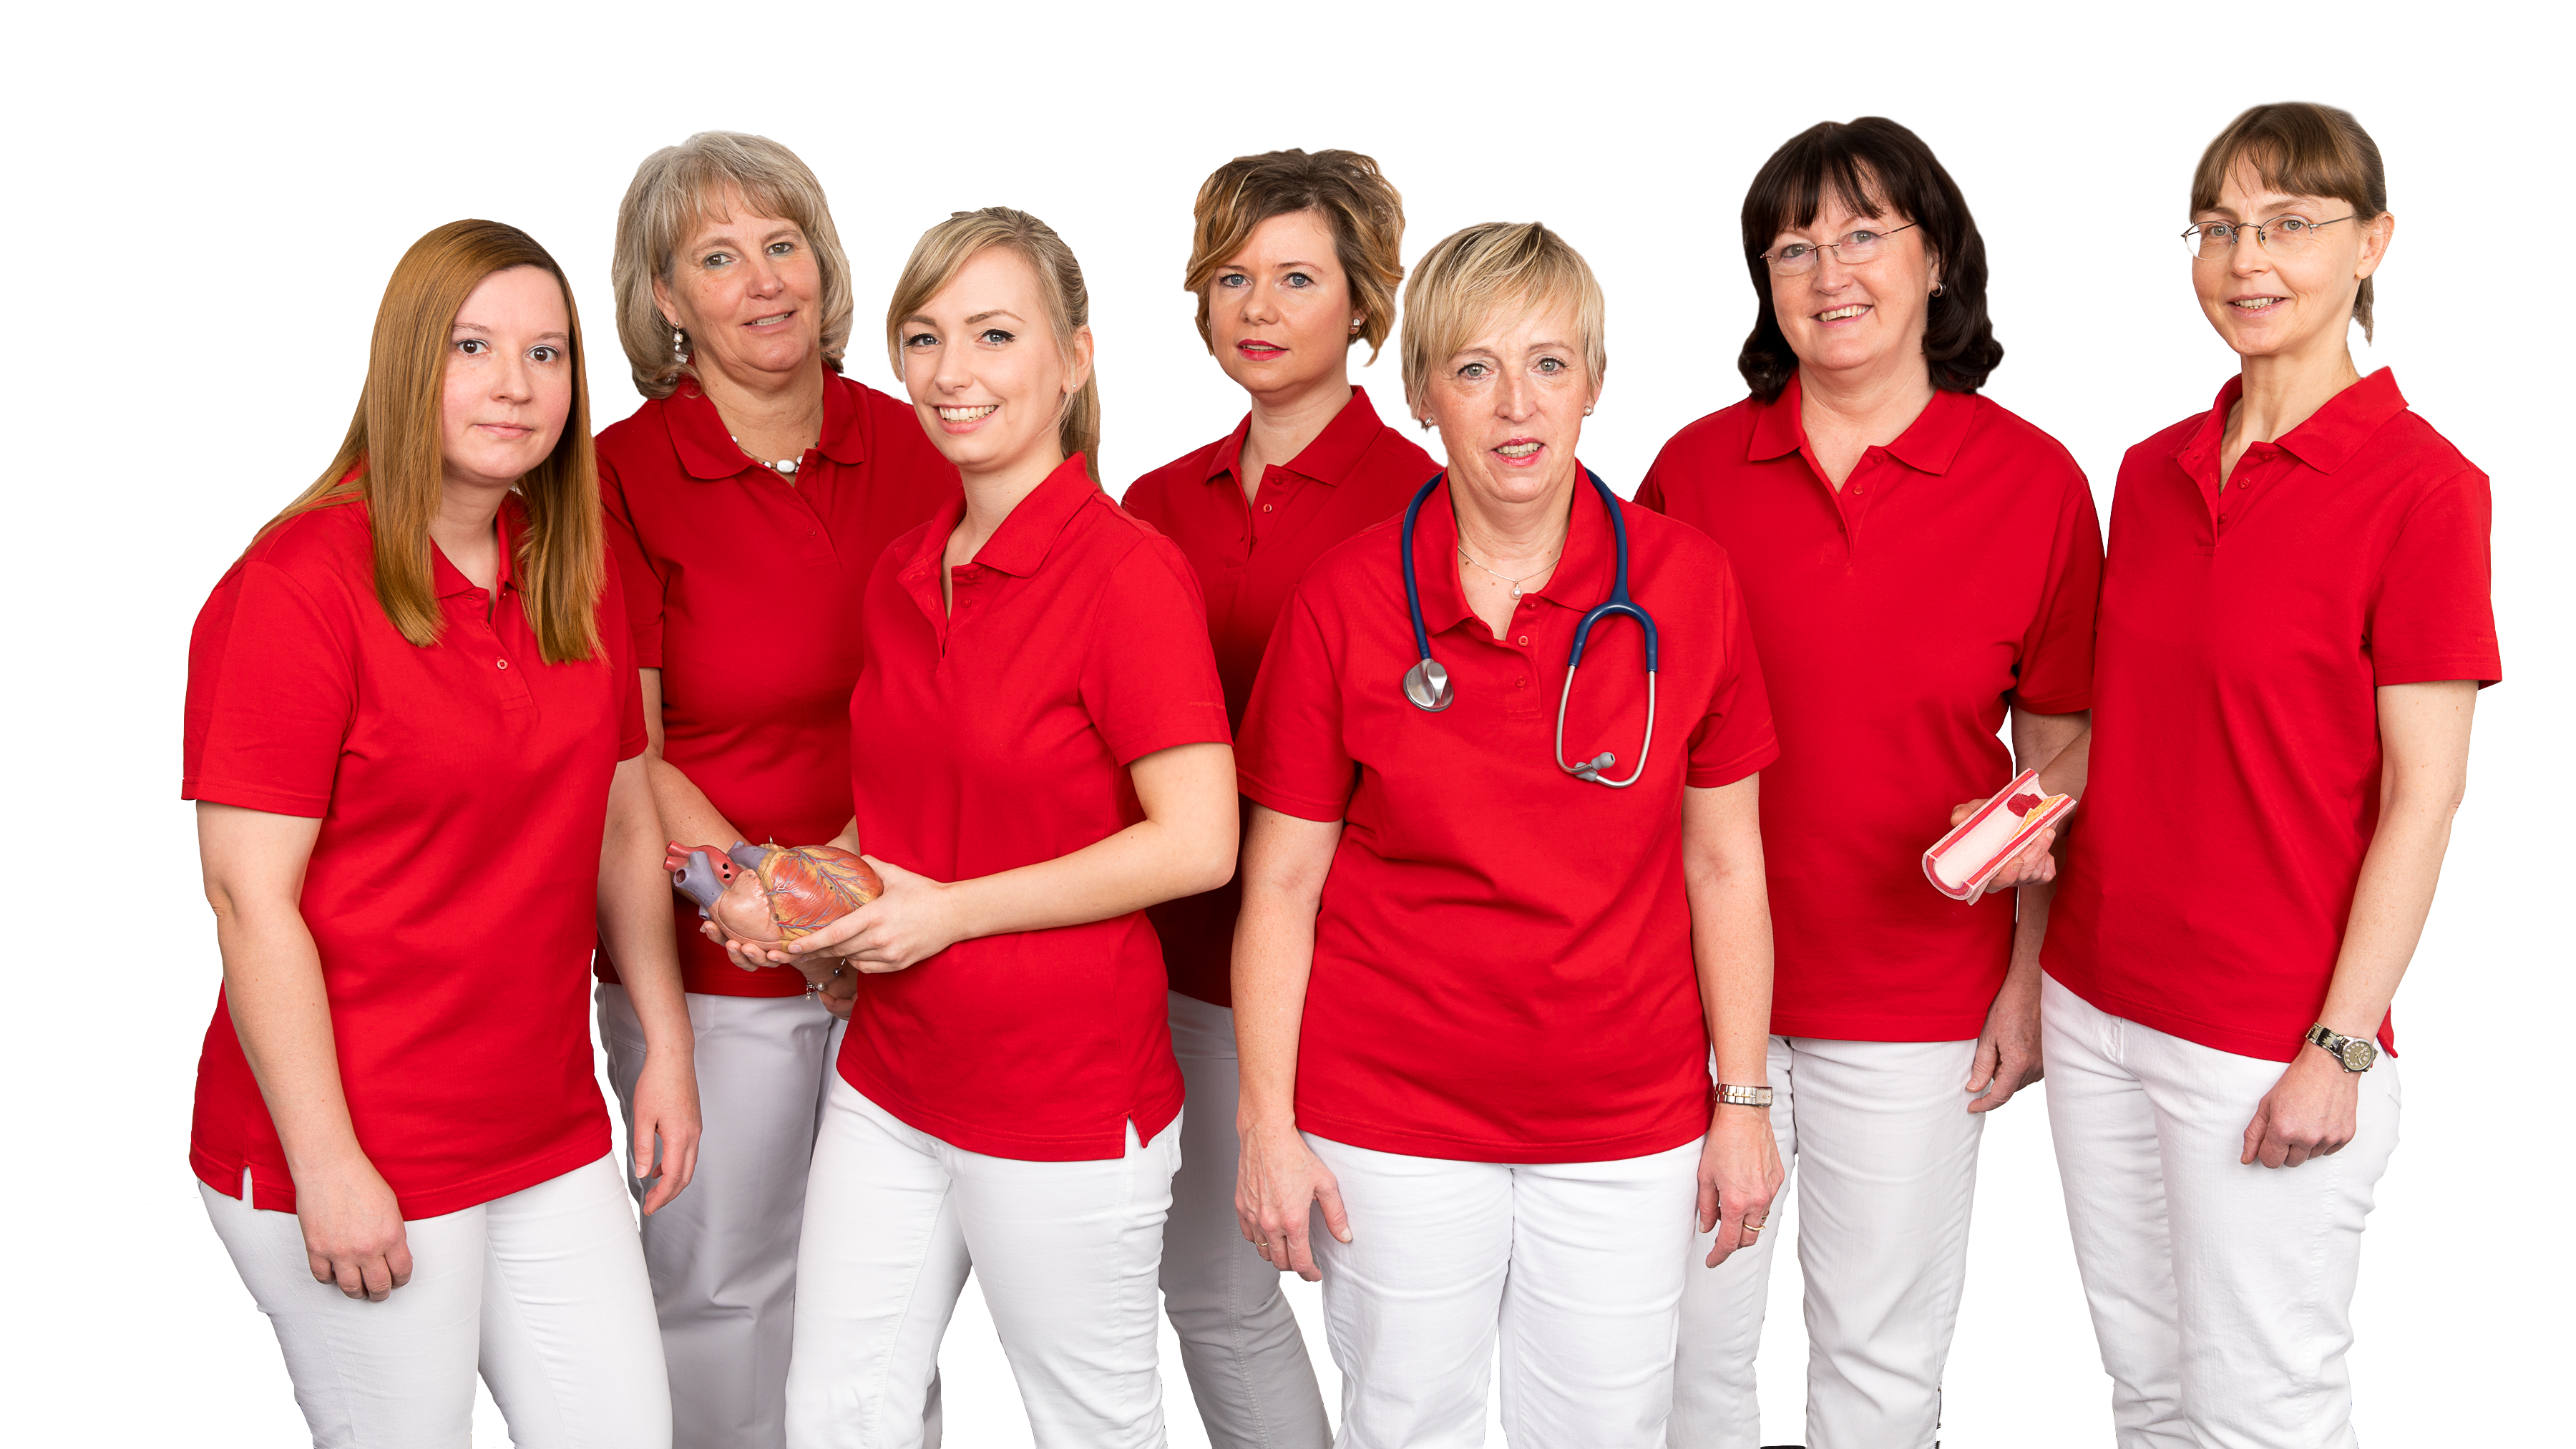 Unser Team Petra, Ines, Jennifer, Doreen, Liane, Kerstin & Esther.